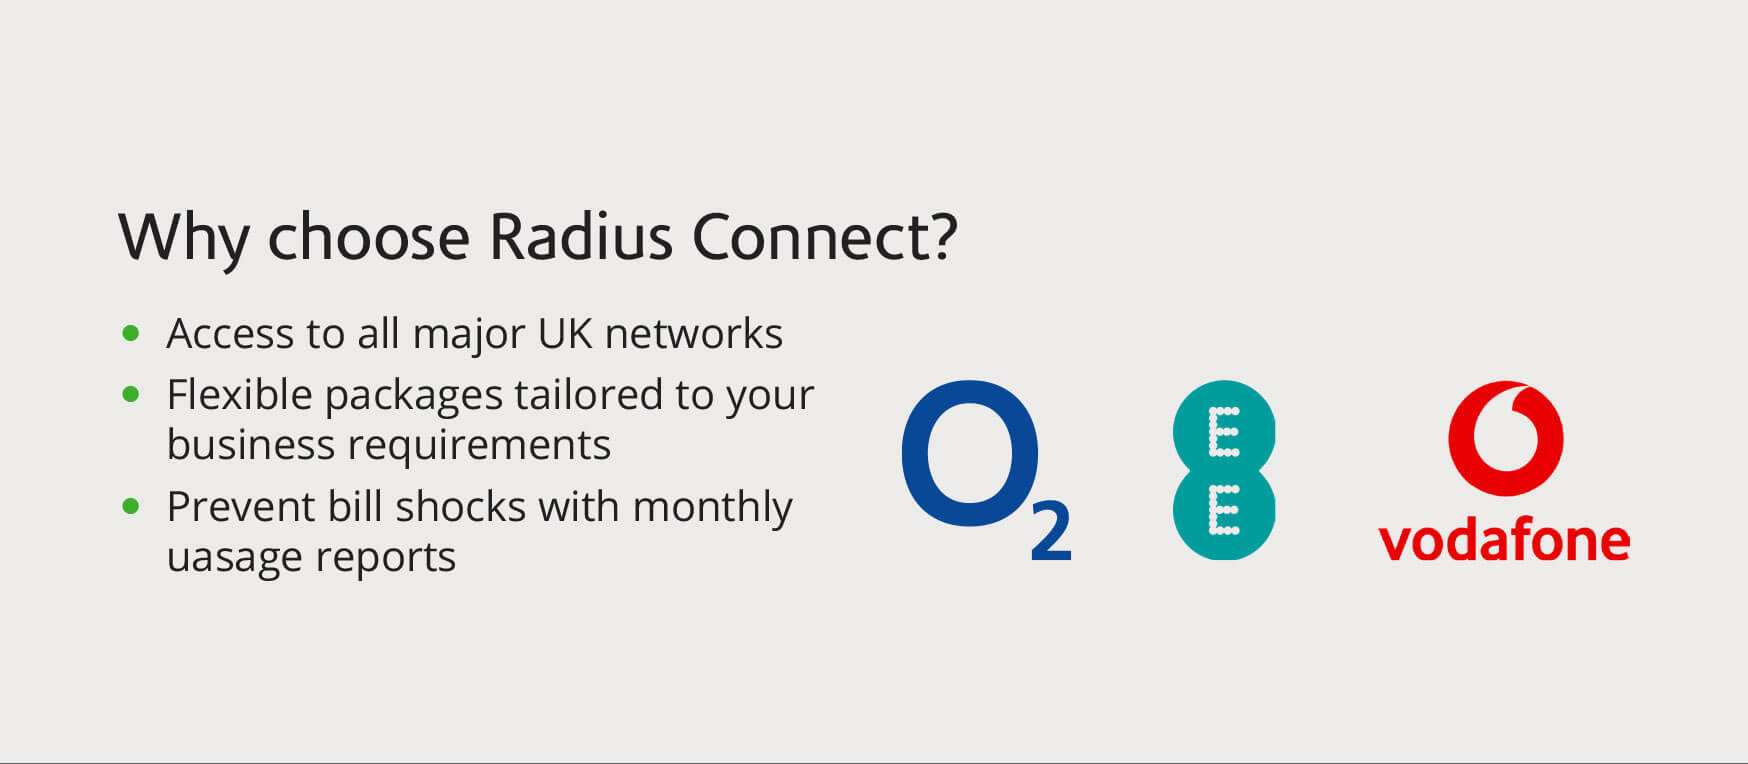 Why choose Radius Connect? Access to all major UK networks. Flexible packages tailored to your business requirements. Prevent bill shocks with monthly uasage reports.